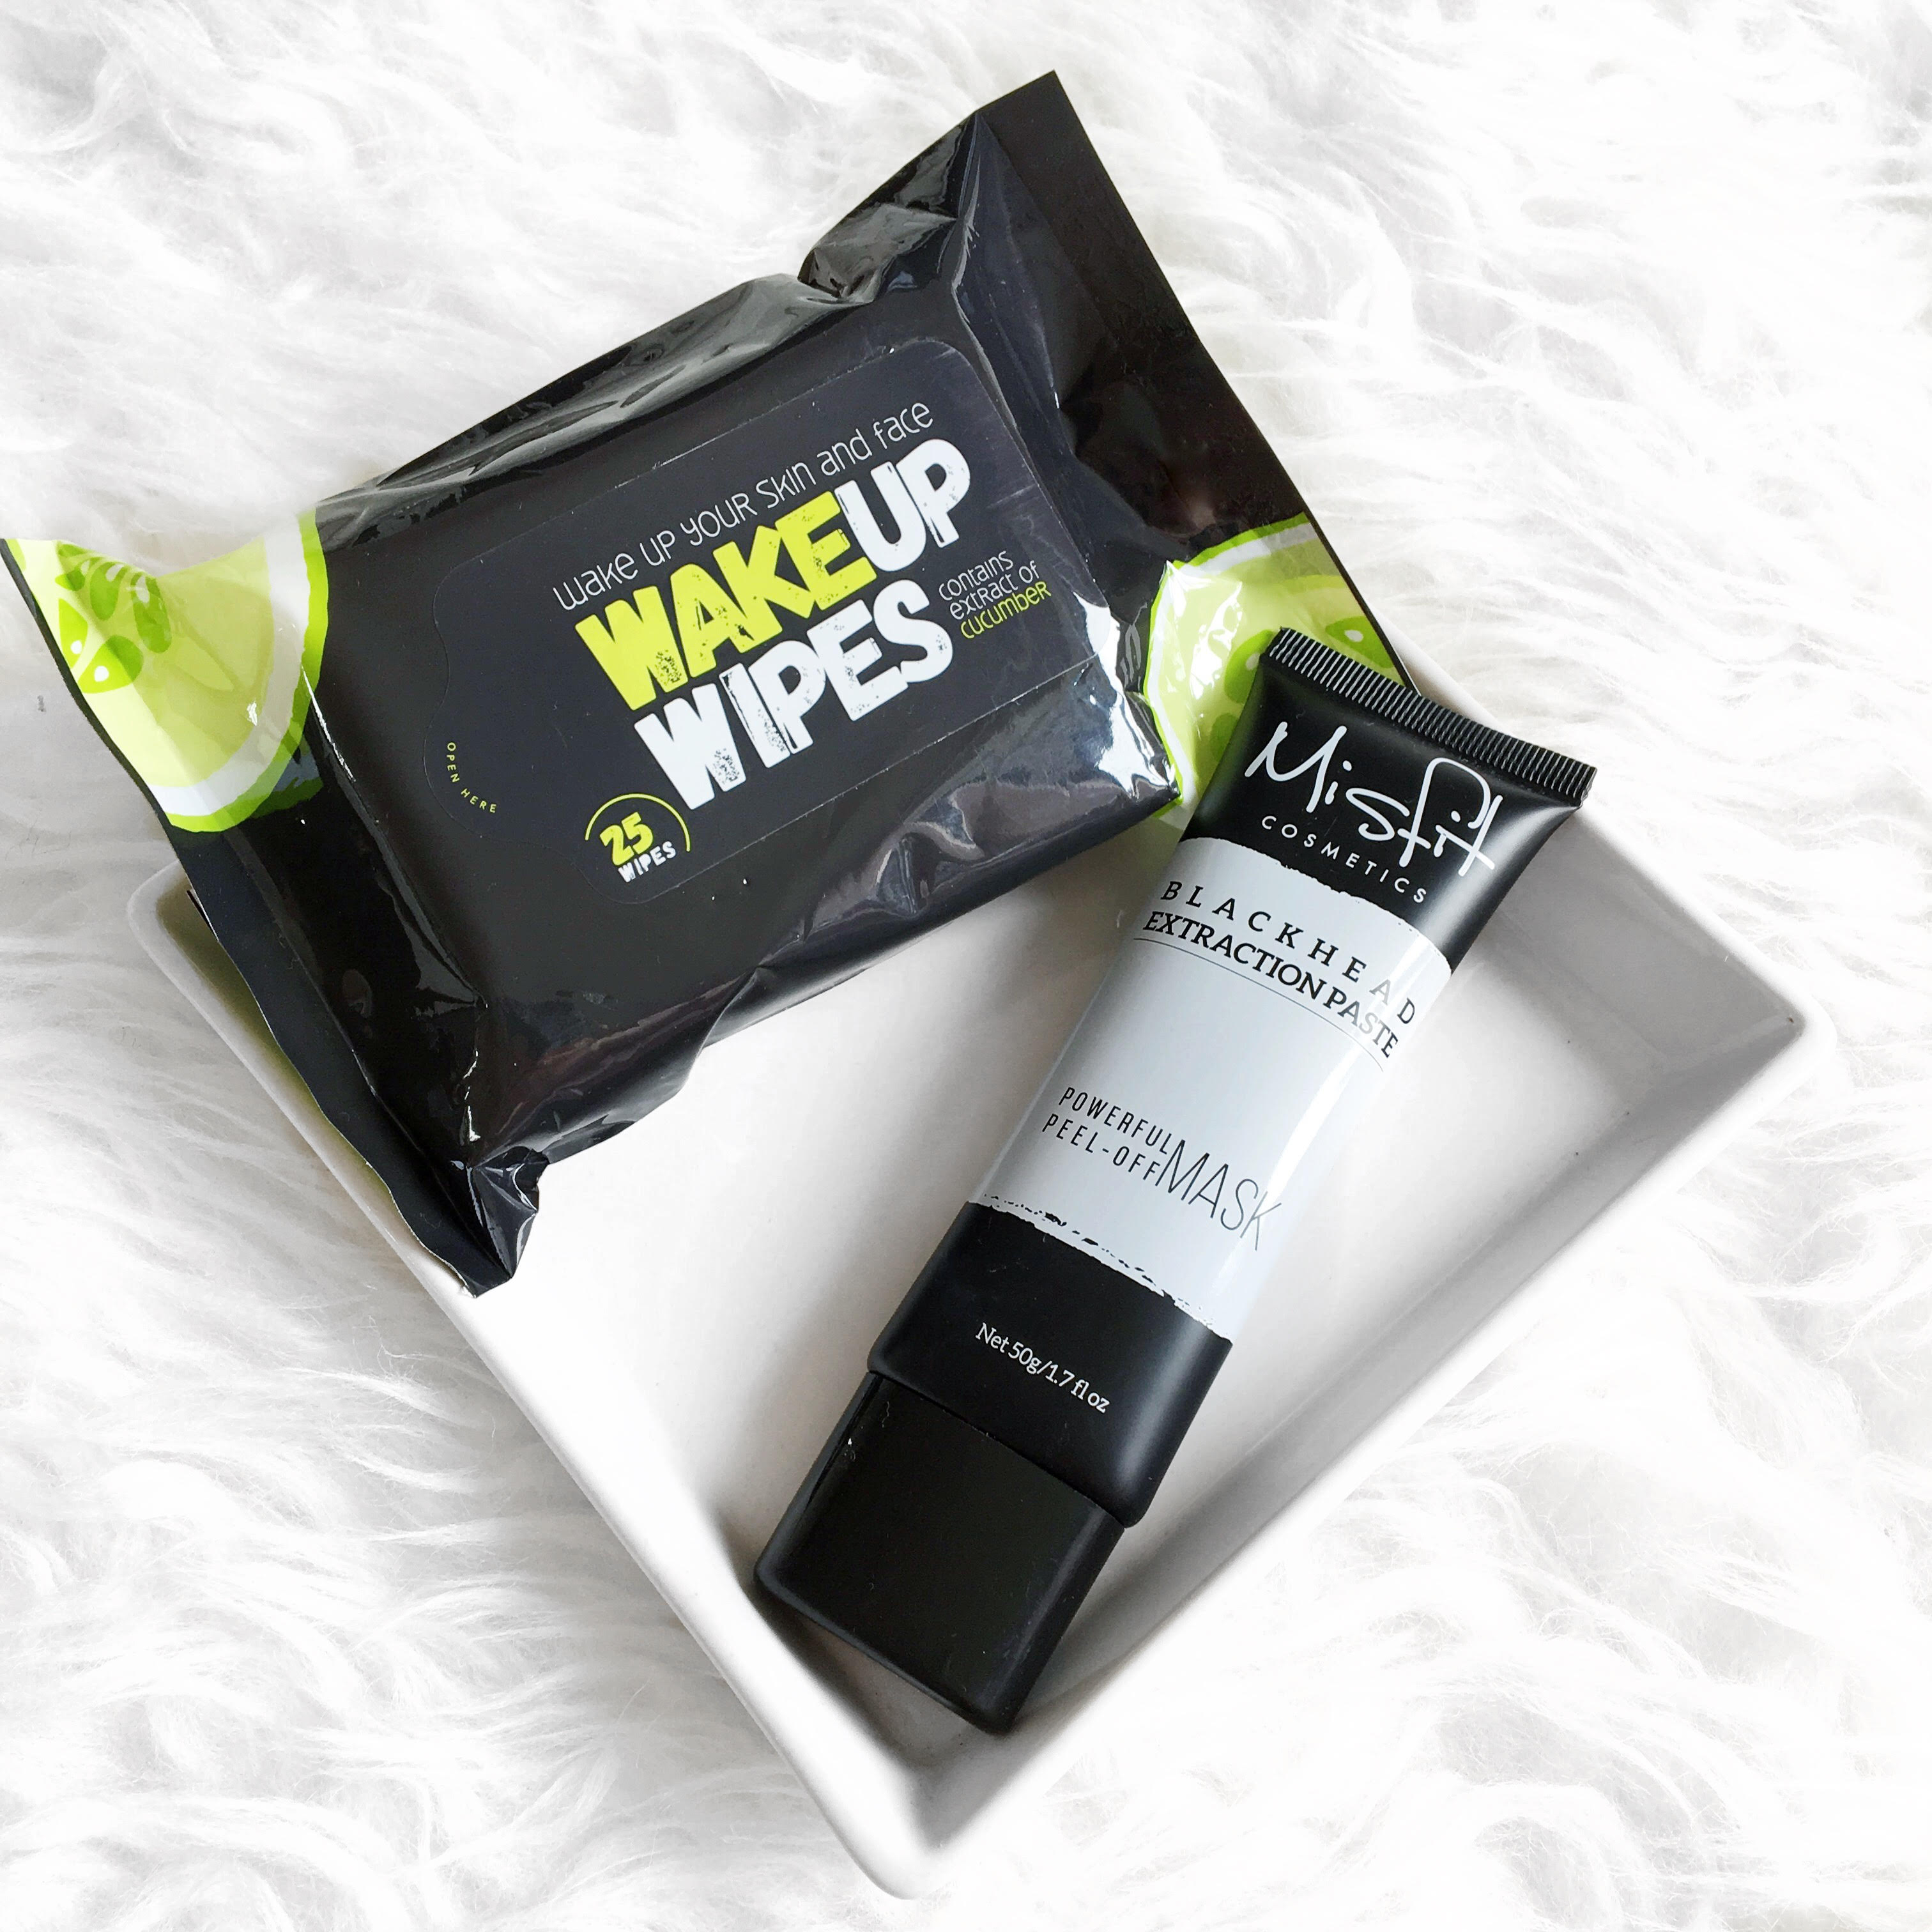 Misfit Cosmetics: Blackhead Extractor Paste and Wake Up Wipes Review*